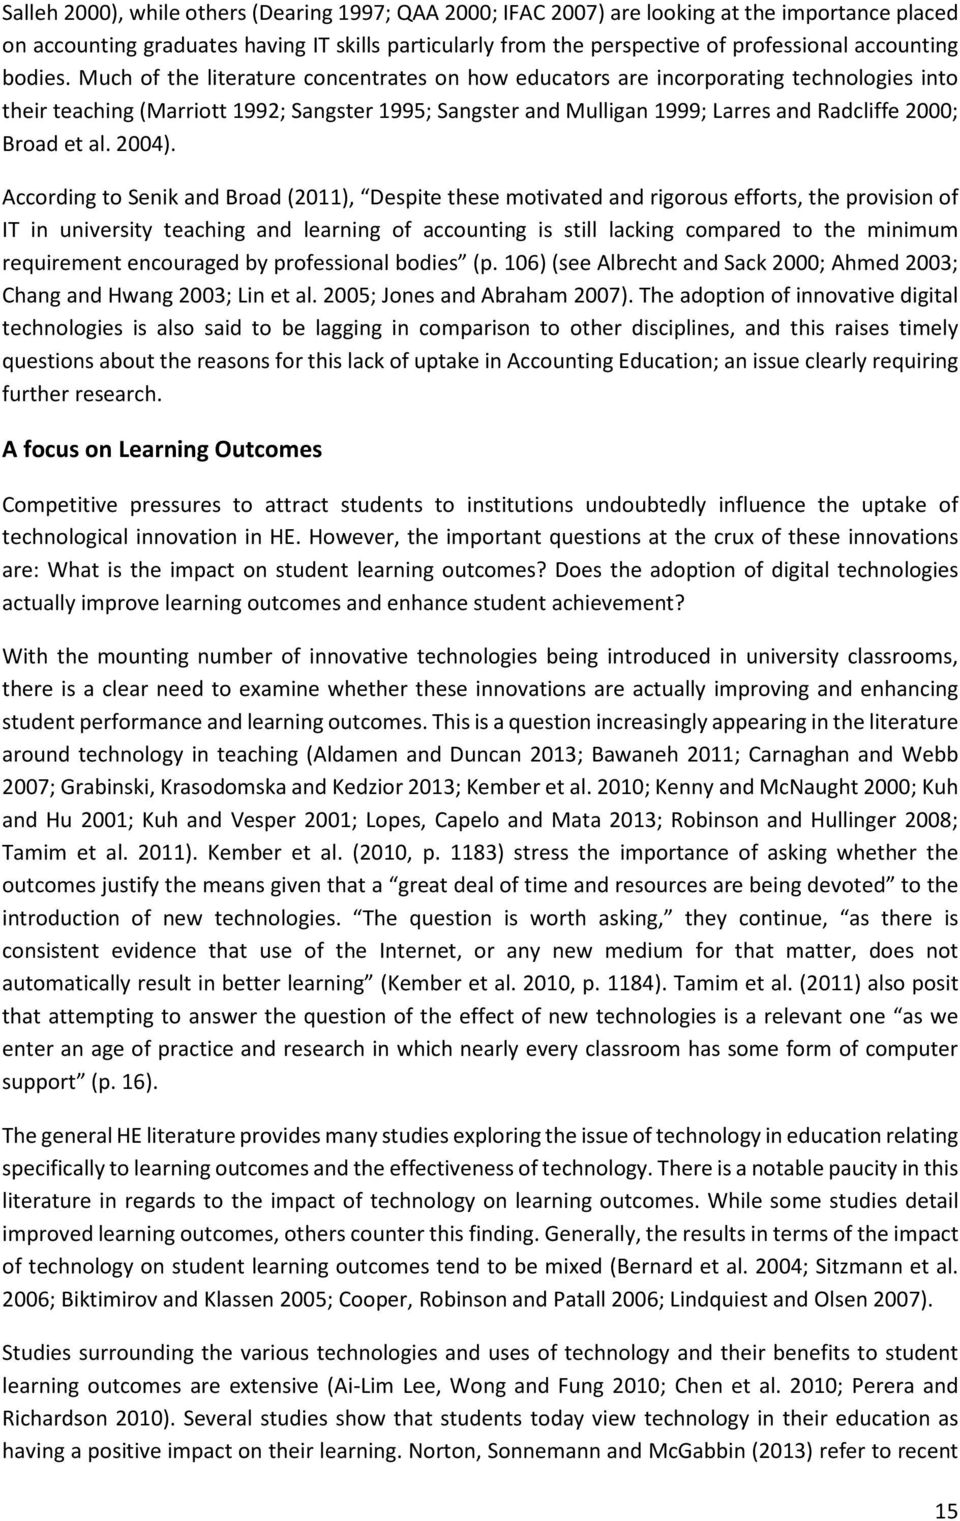 Much of the literature concentrates on how educators are incorporating technologies into their teaching (Marriott 1992; Sangster 1995; Sangster and Mulligan 1999; Larres and Radcliffe 2000; Broad et